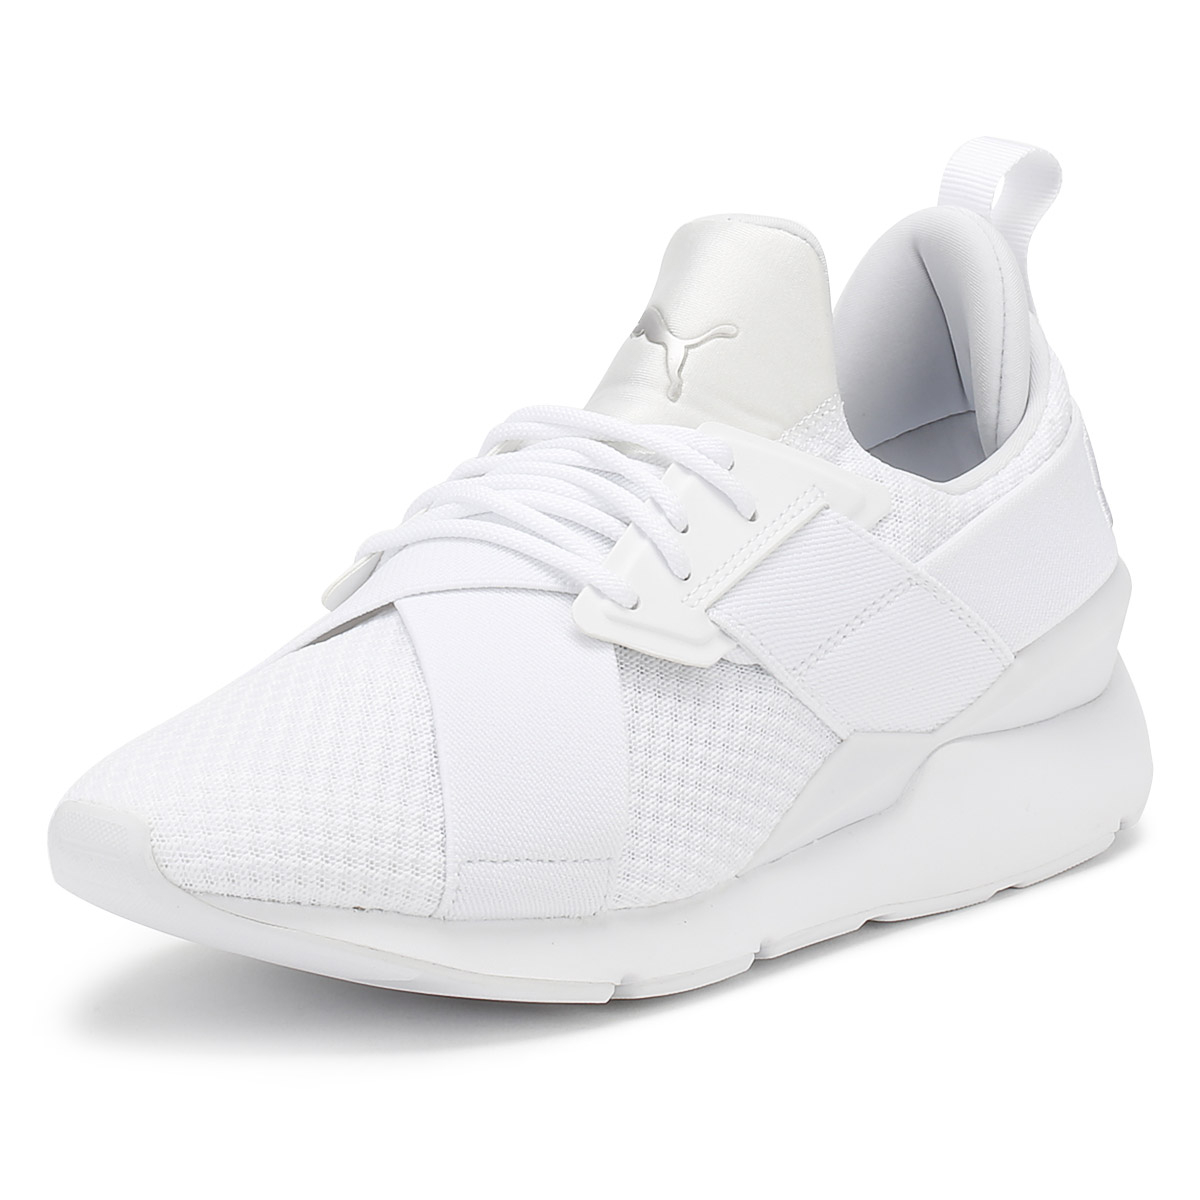 Details about PUMA Womens White Muse X-Strap EP Trainers Lace Up Sport  Casual Running Shoes a703e3223